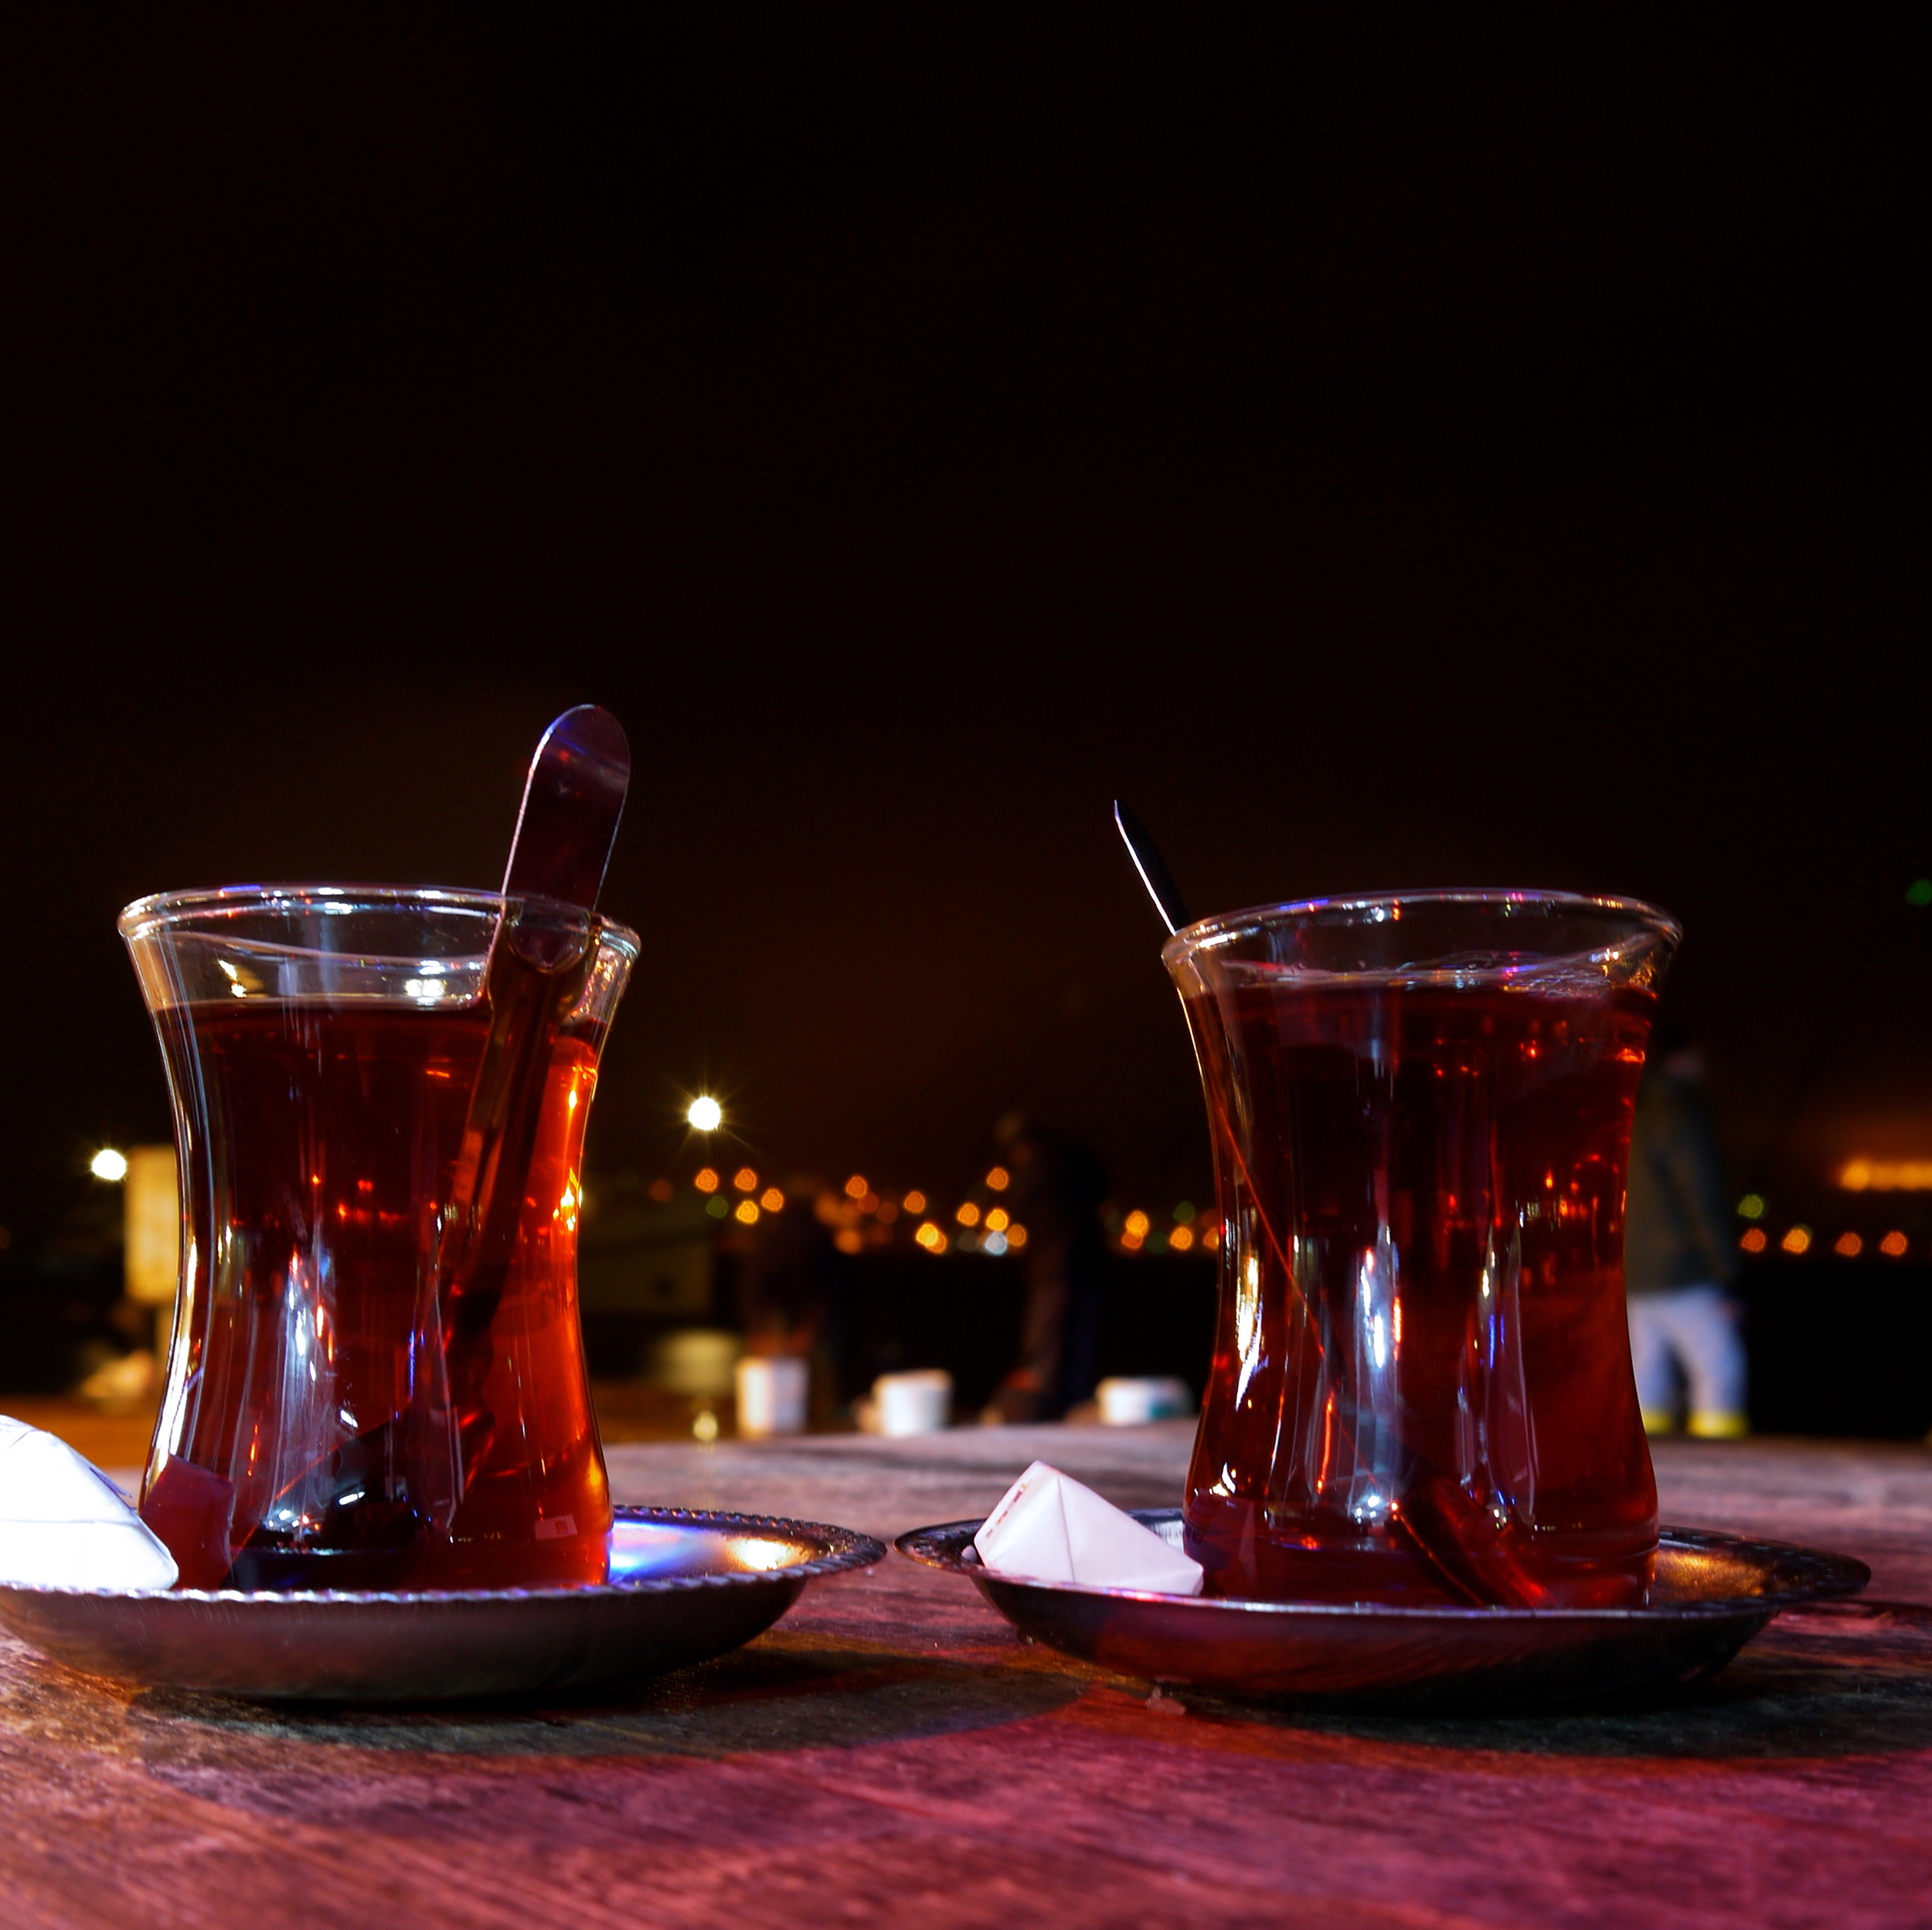 Figure 8. Turkish tea